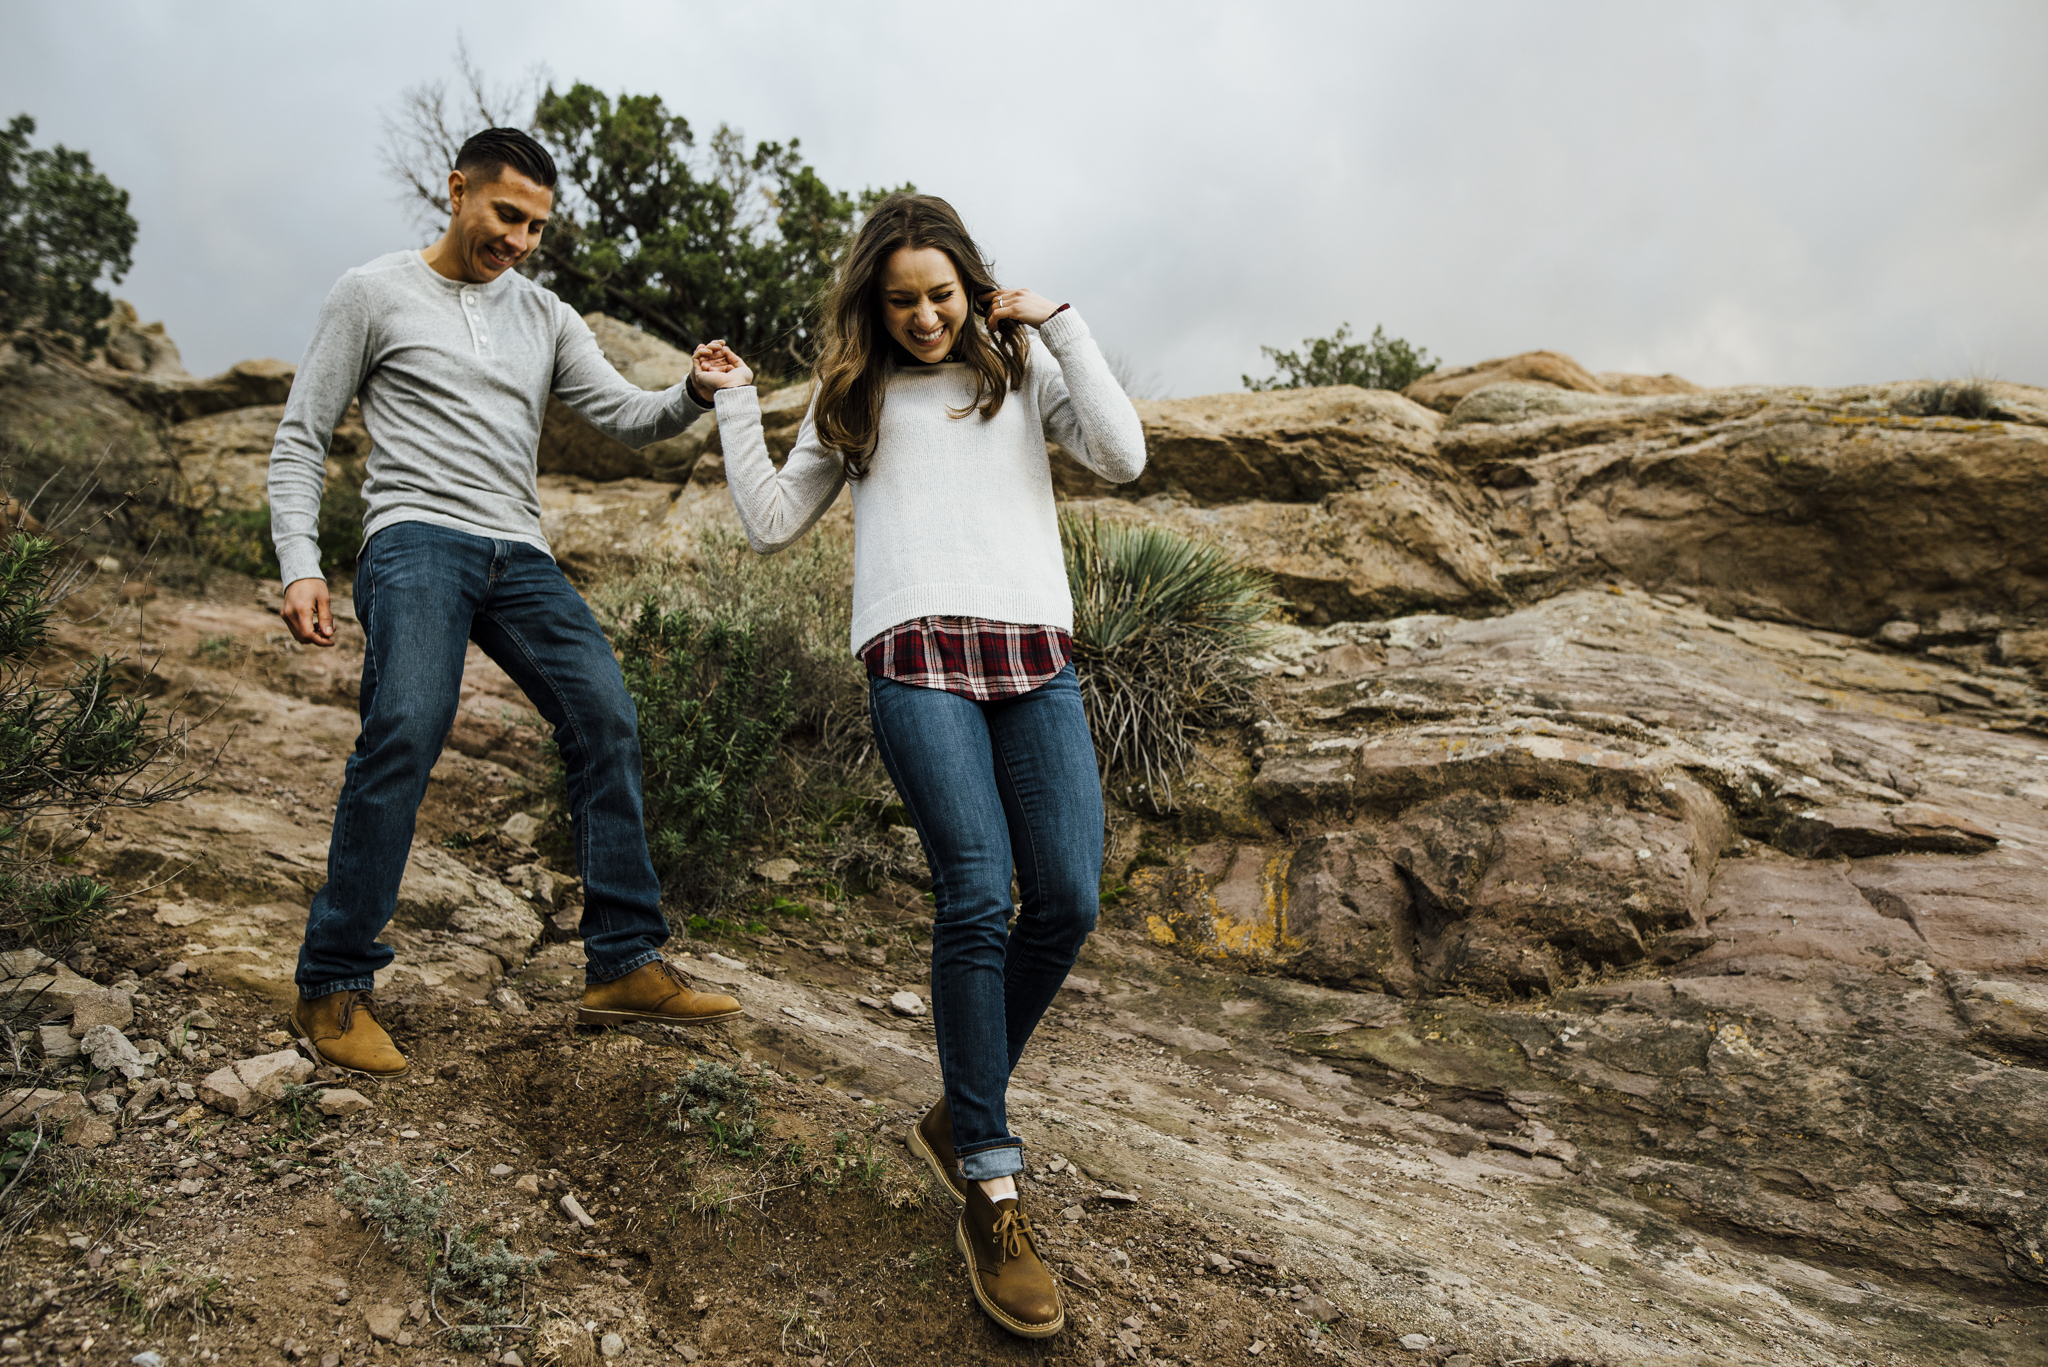 ©Isaiah-&-Taylor-Photography---Vasquez-Rocks-Engagement-015.jpg